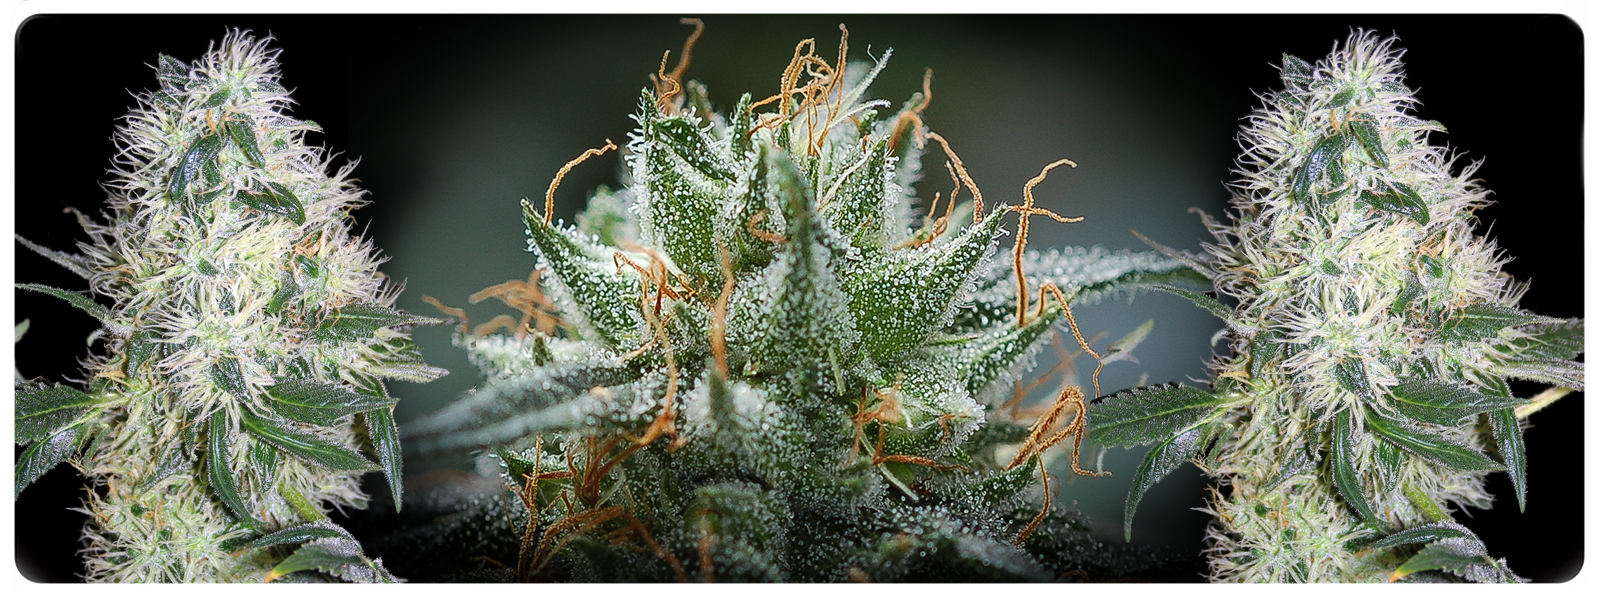 Madchem feminized cannabis seeds for medical ailments or just looking for high thc and cbd strain